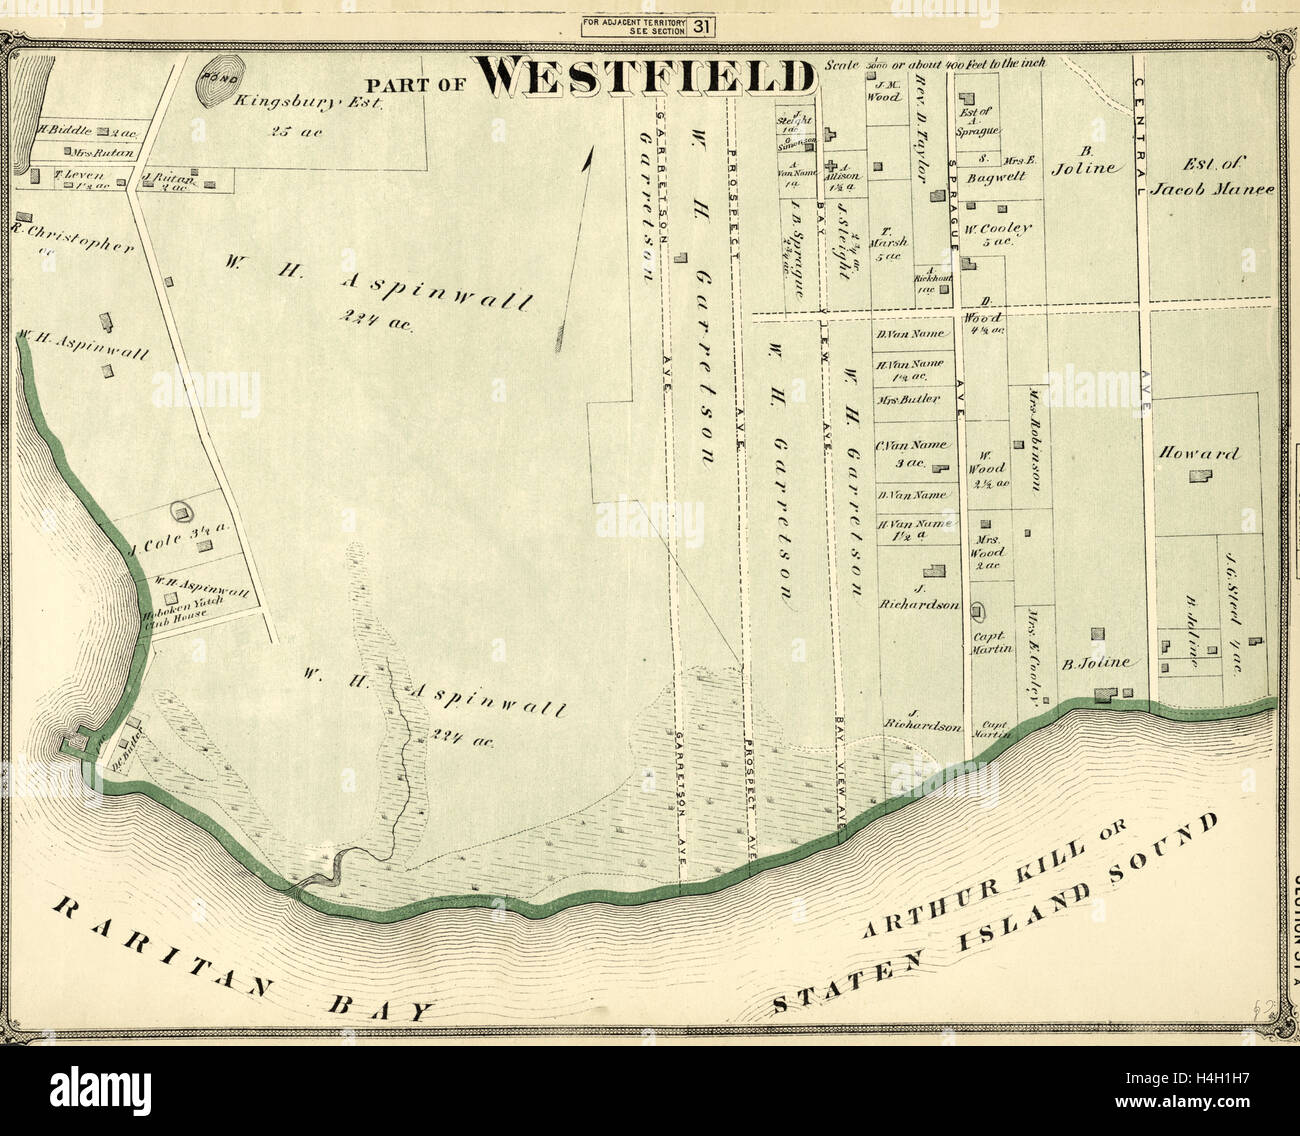 Part of Westfield, New York, USA - Stock Image